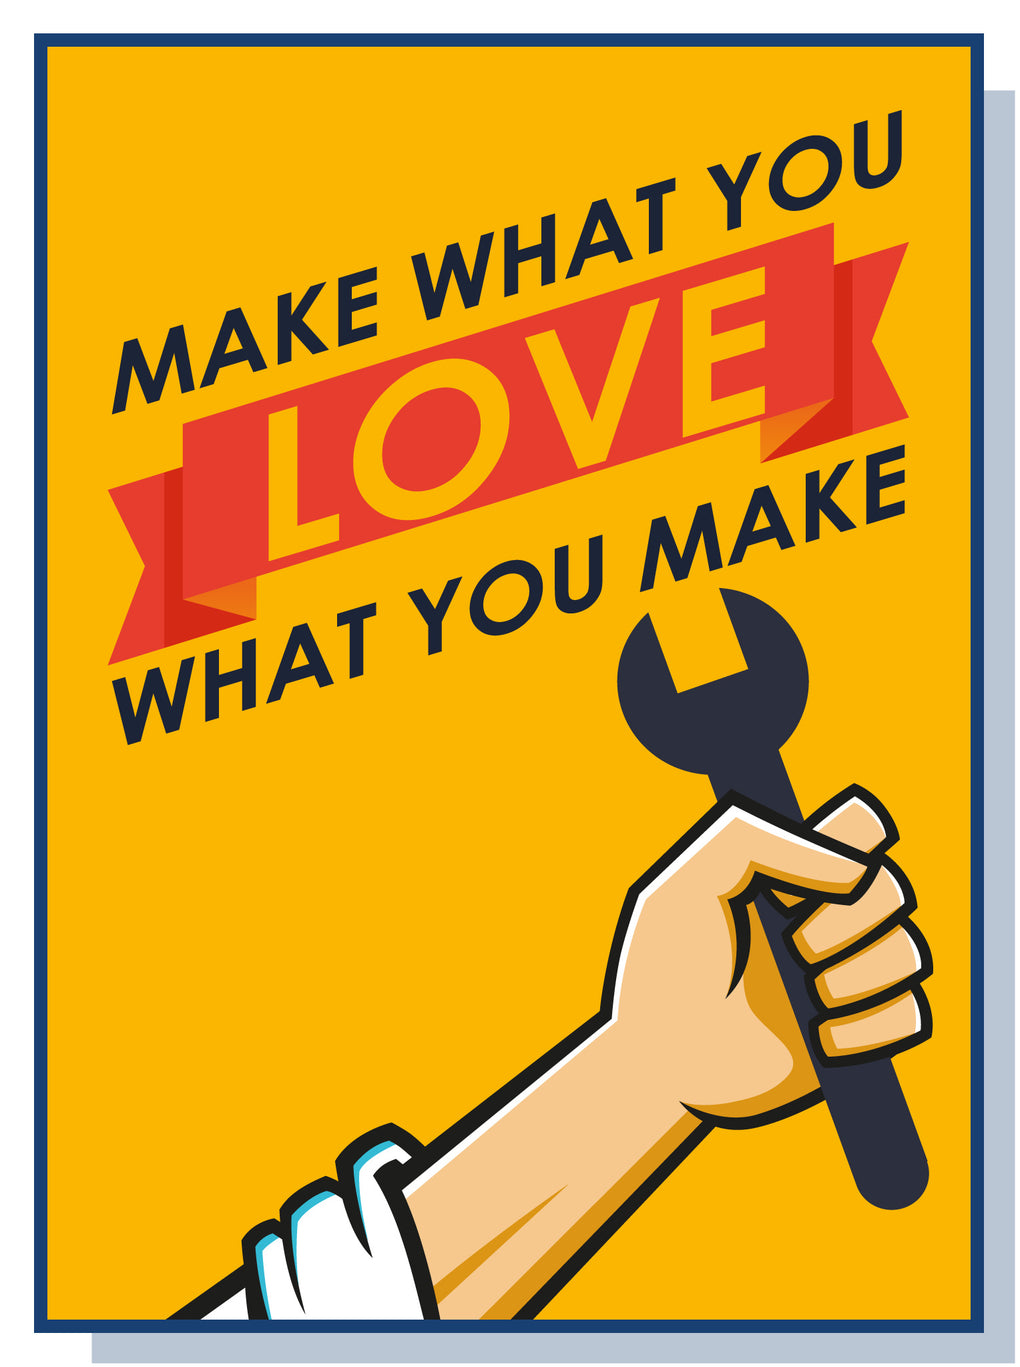 Make what you love